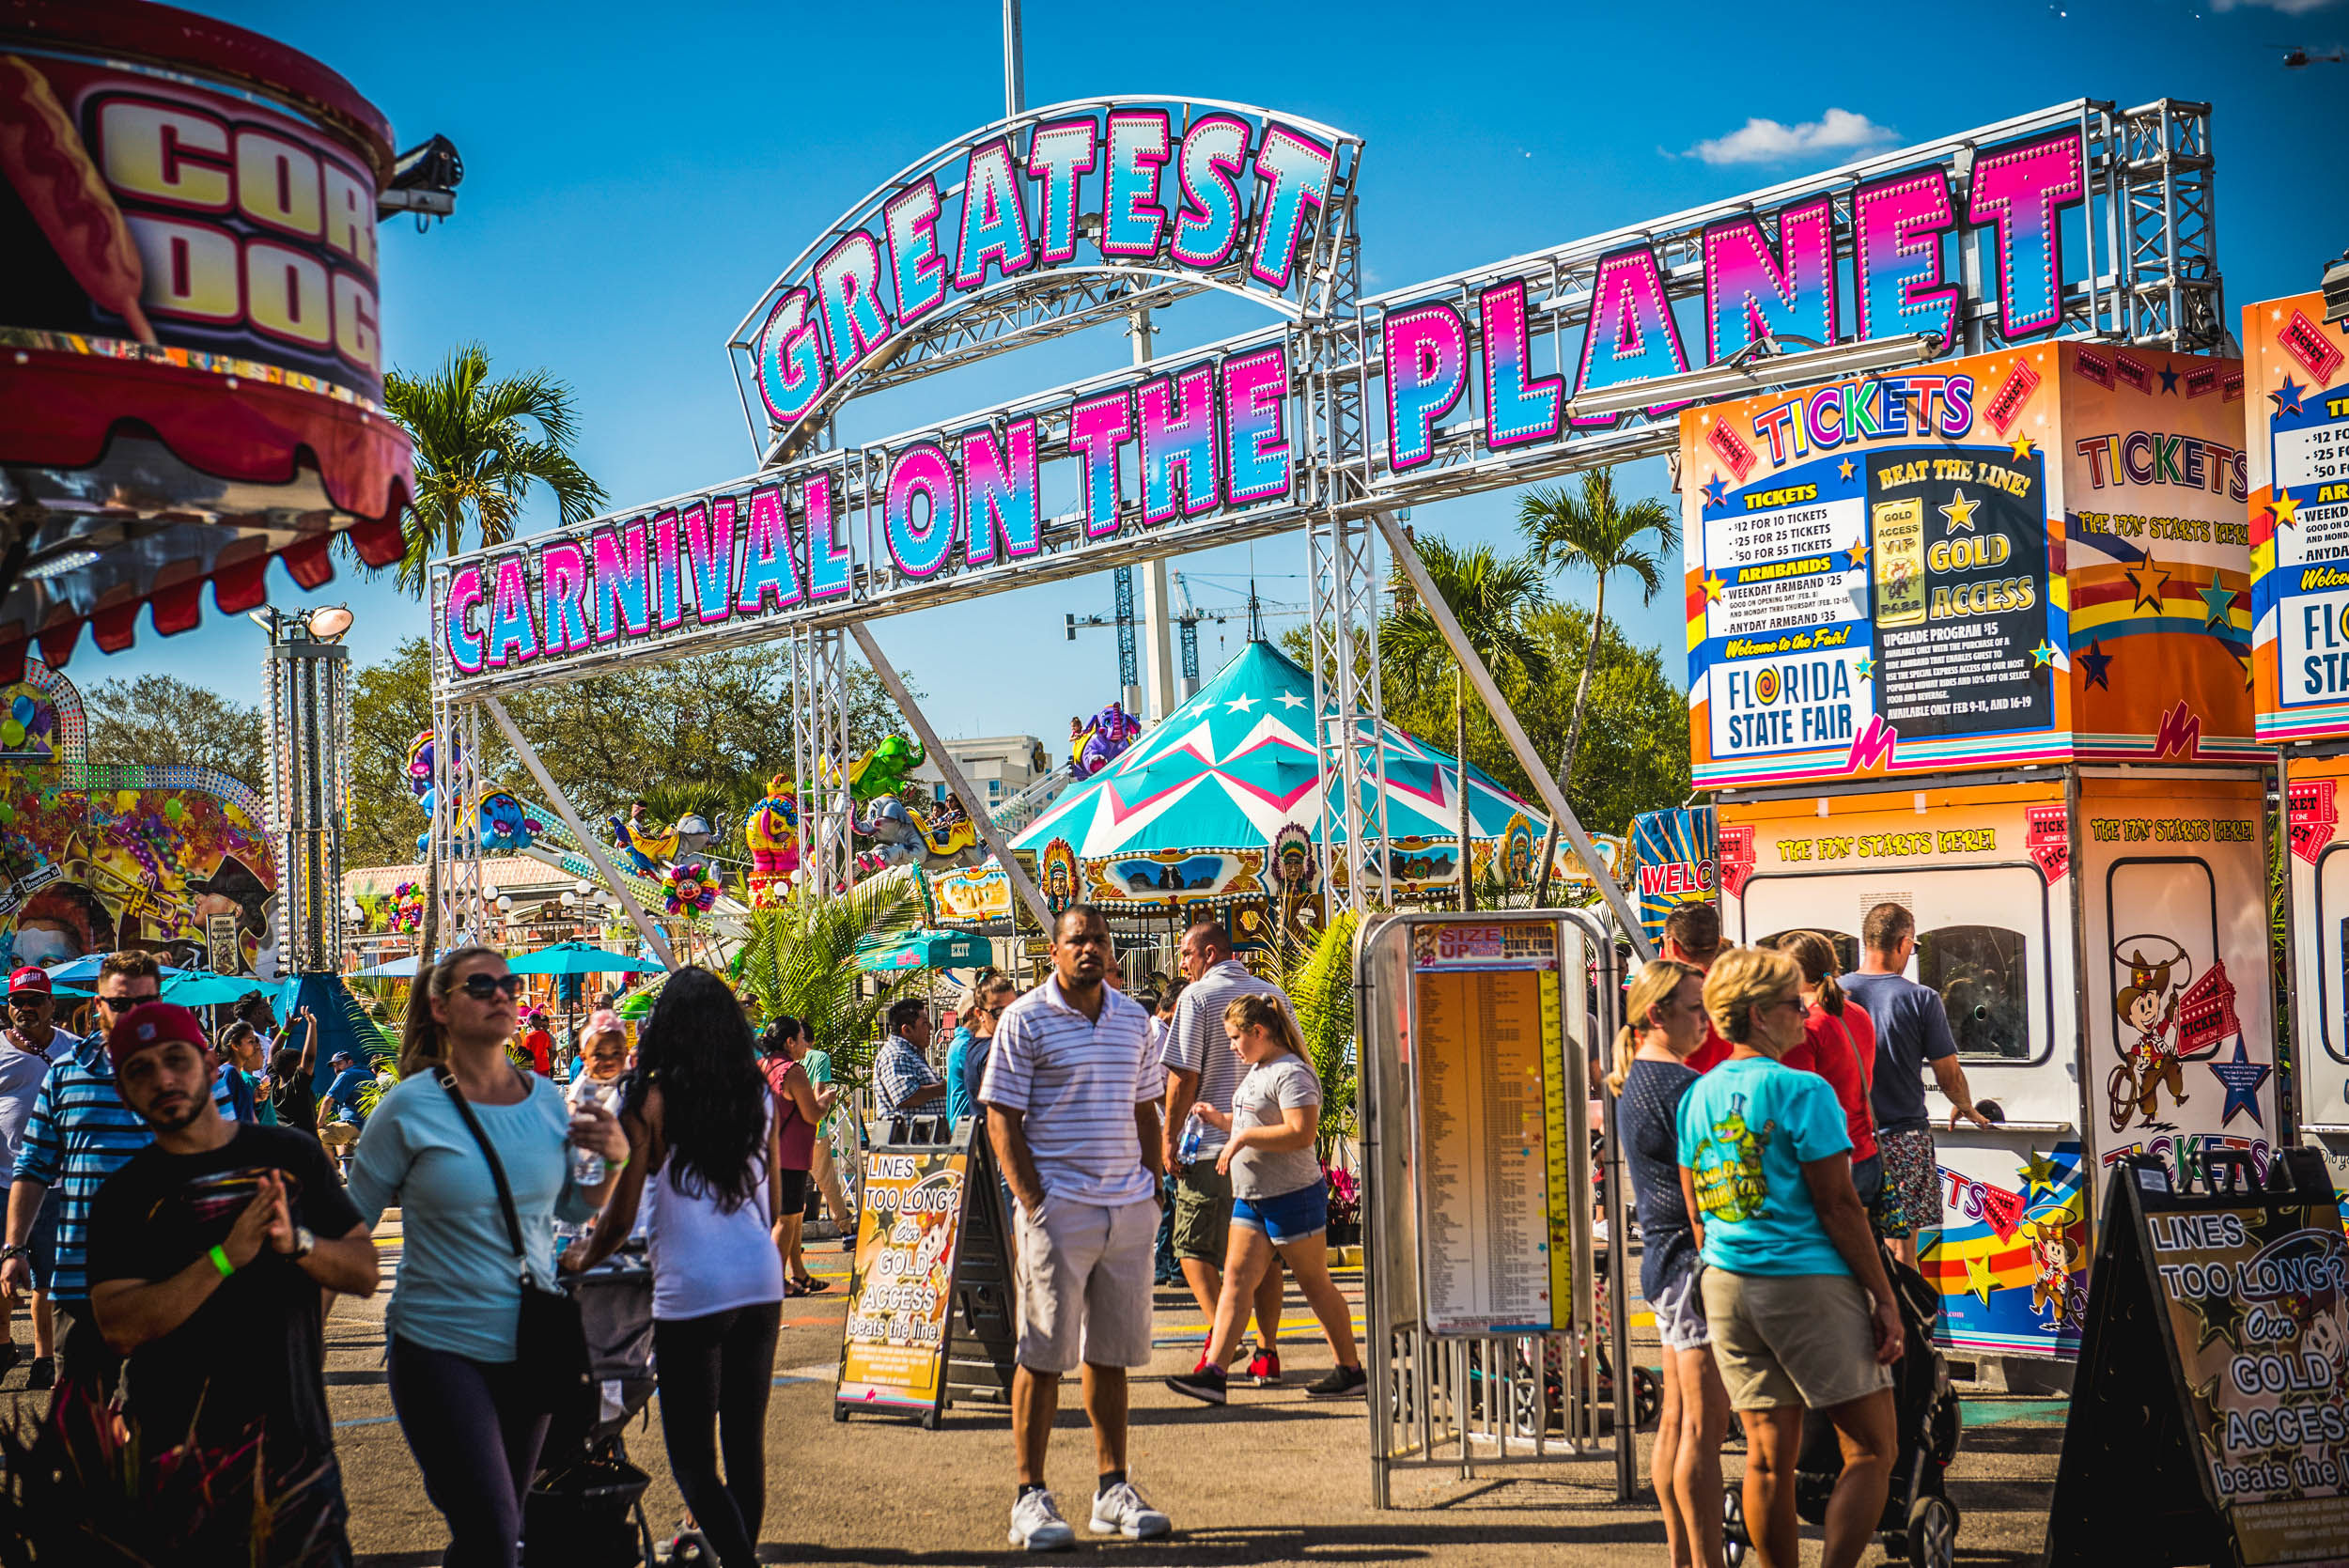 Participants - Florida State Fair In Florida State Fairgrounds Calendar Of Events